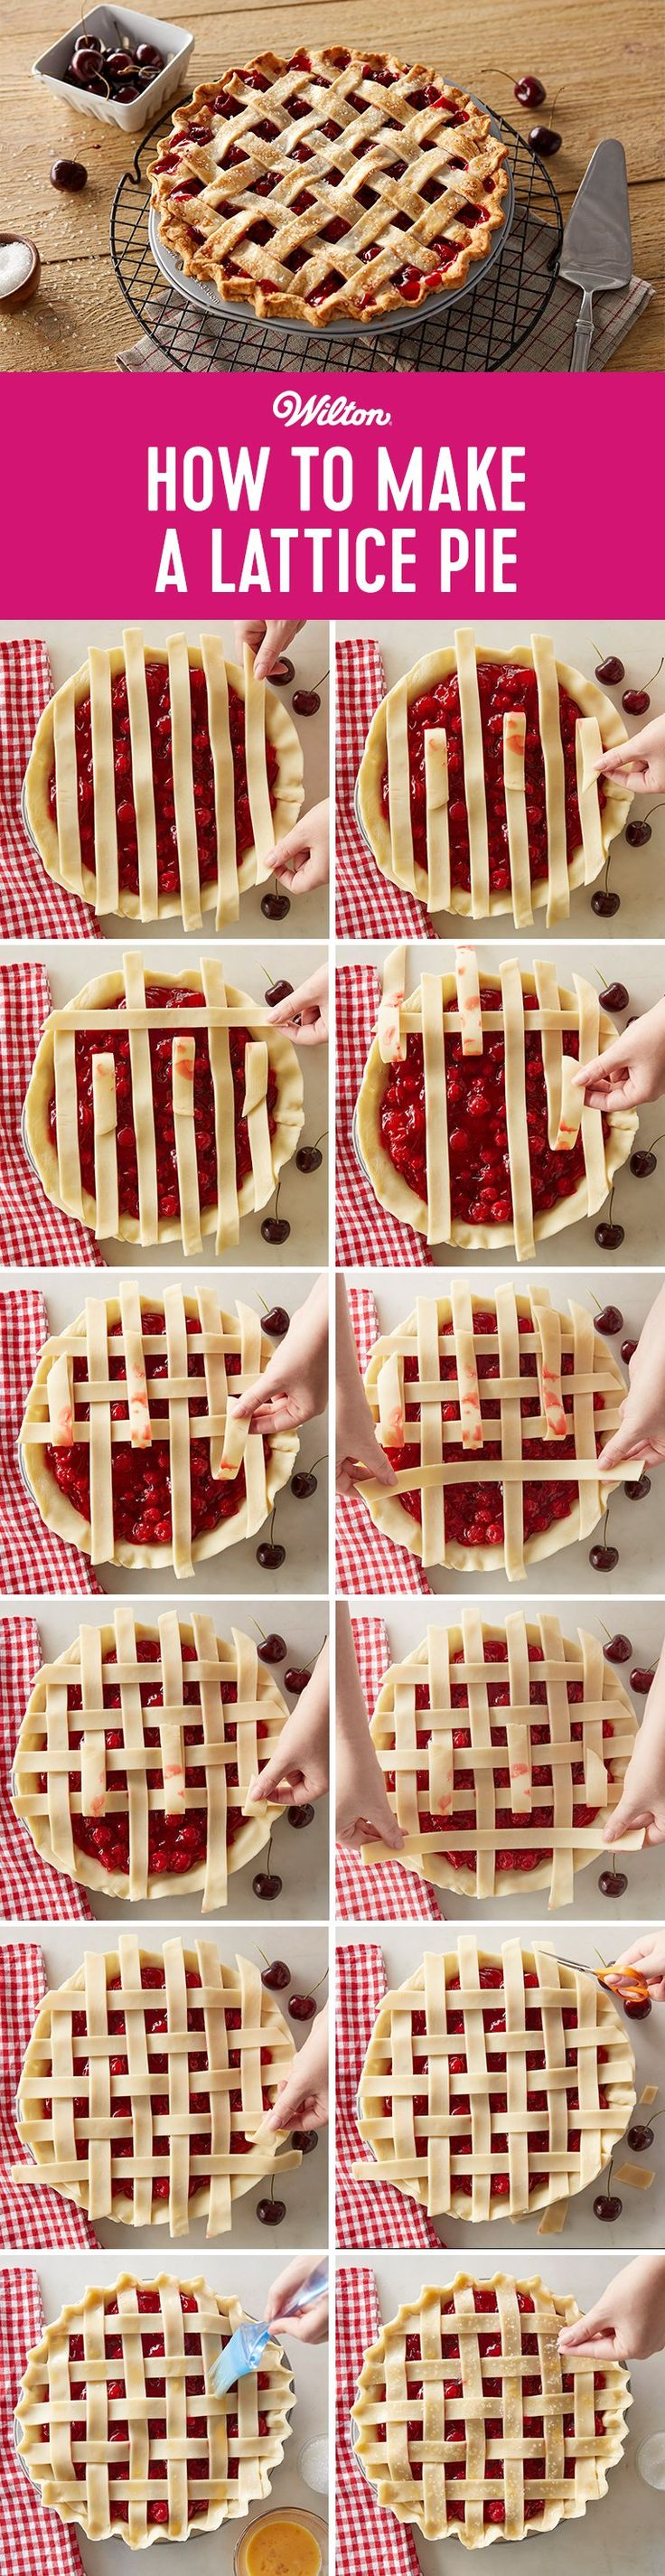 Intimidated by lattice top for a pie crust? Though it may look fancy, it's easy to make a lattice top for your pie. Click to learn how easy it is to make a lattice pie crust!